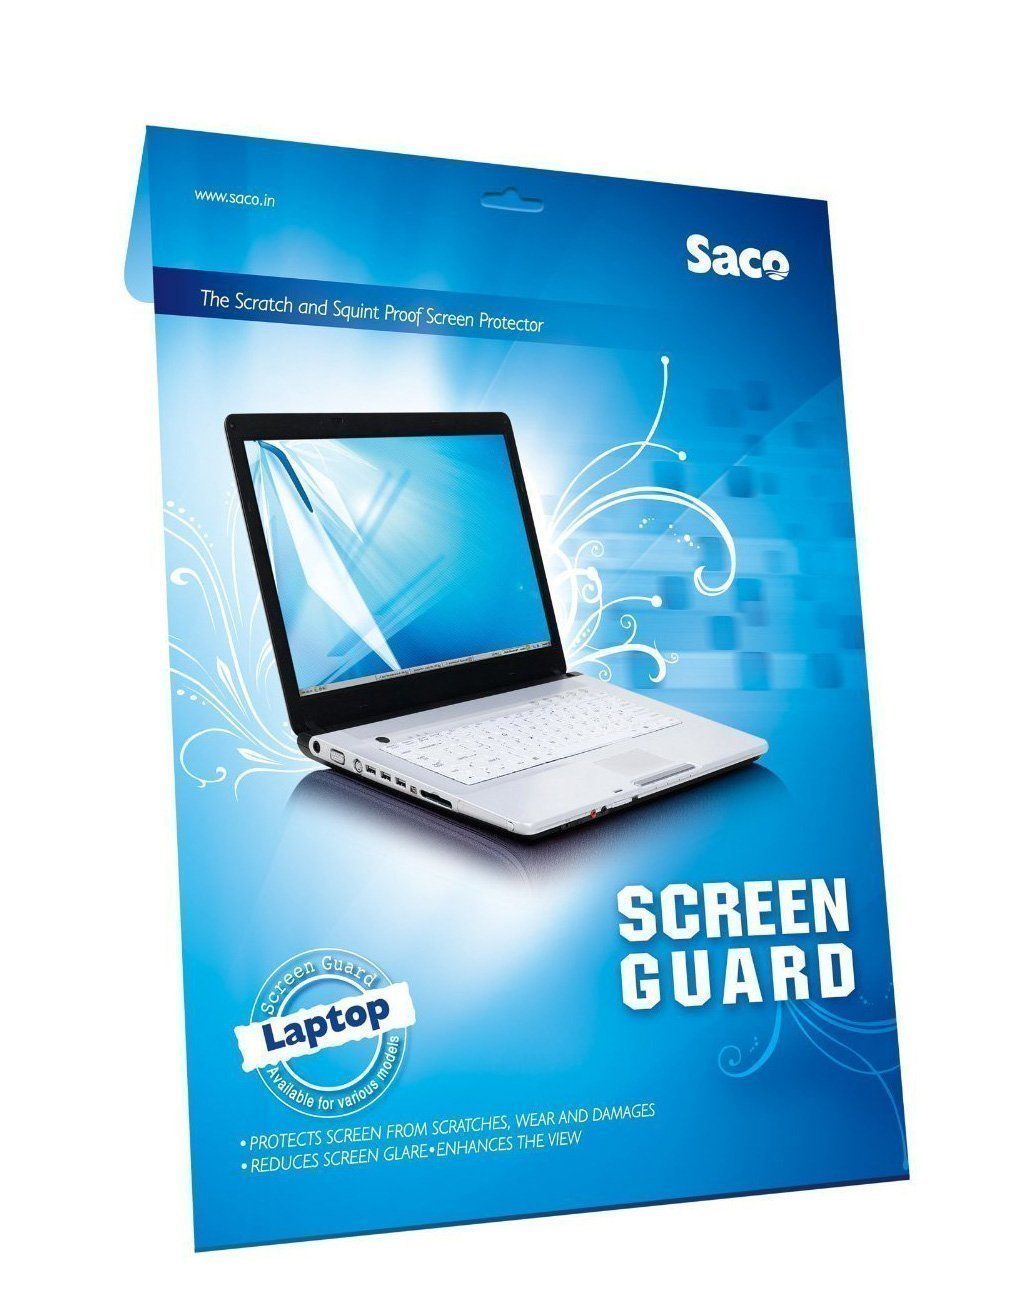 Saco Screen Protector For Dell Inspiron 3148 116 Inch Touchscreen Mousepad 103d 215cm X 18cm Laptop Buy